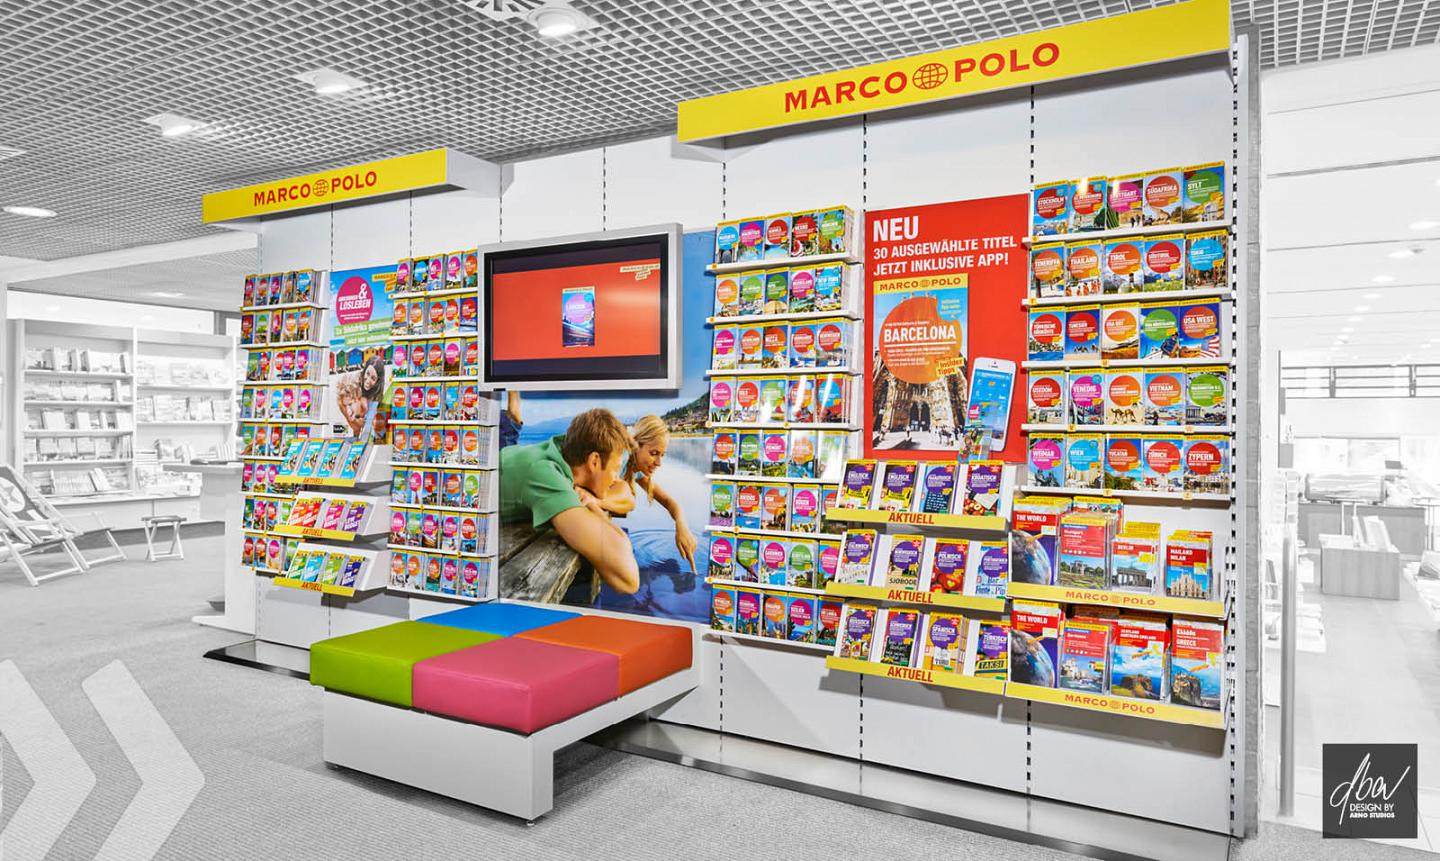 Marco polo online shop germany